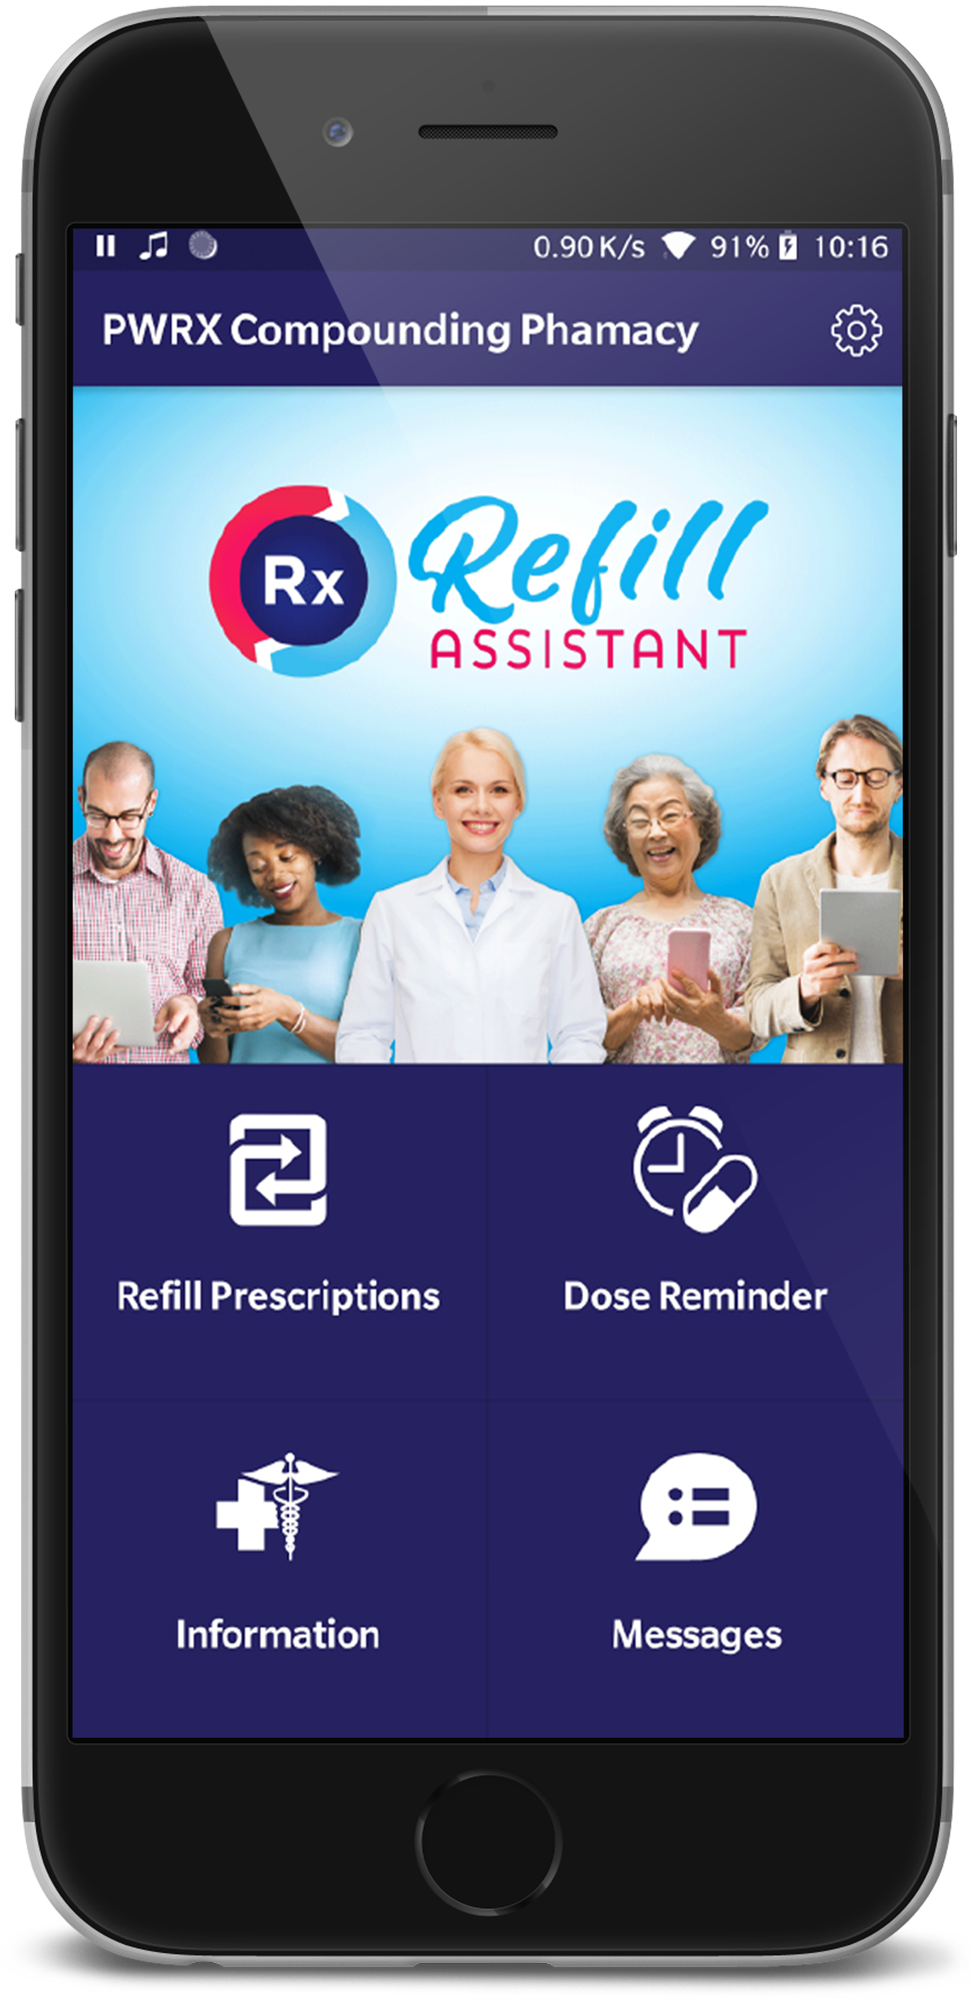 Refill Assistant App displayed on Phone